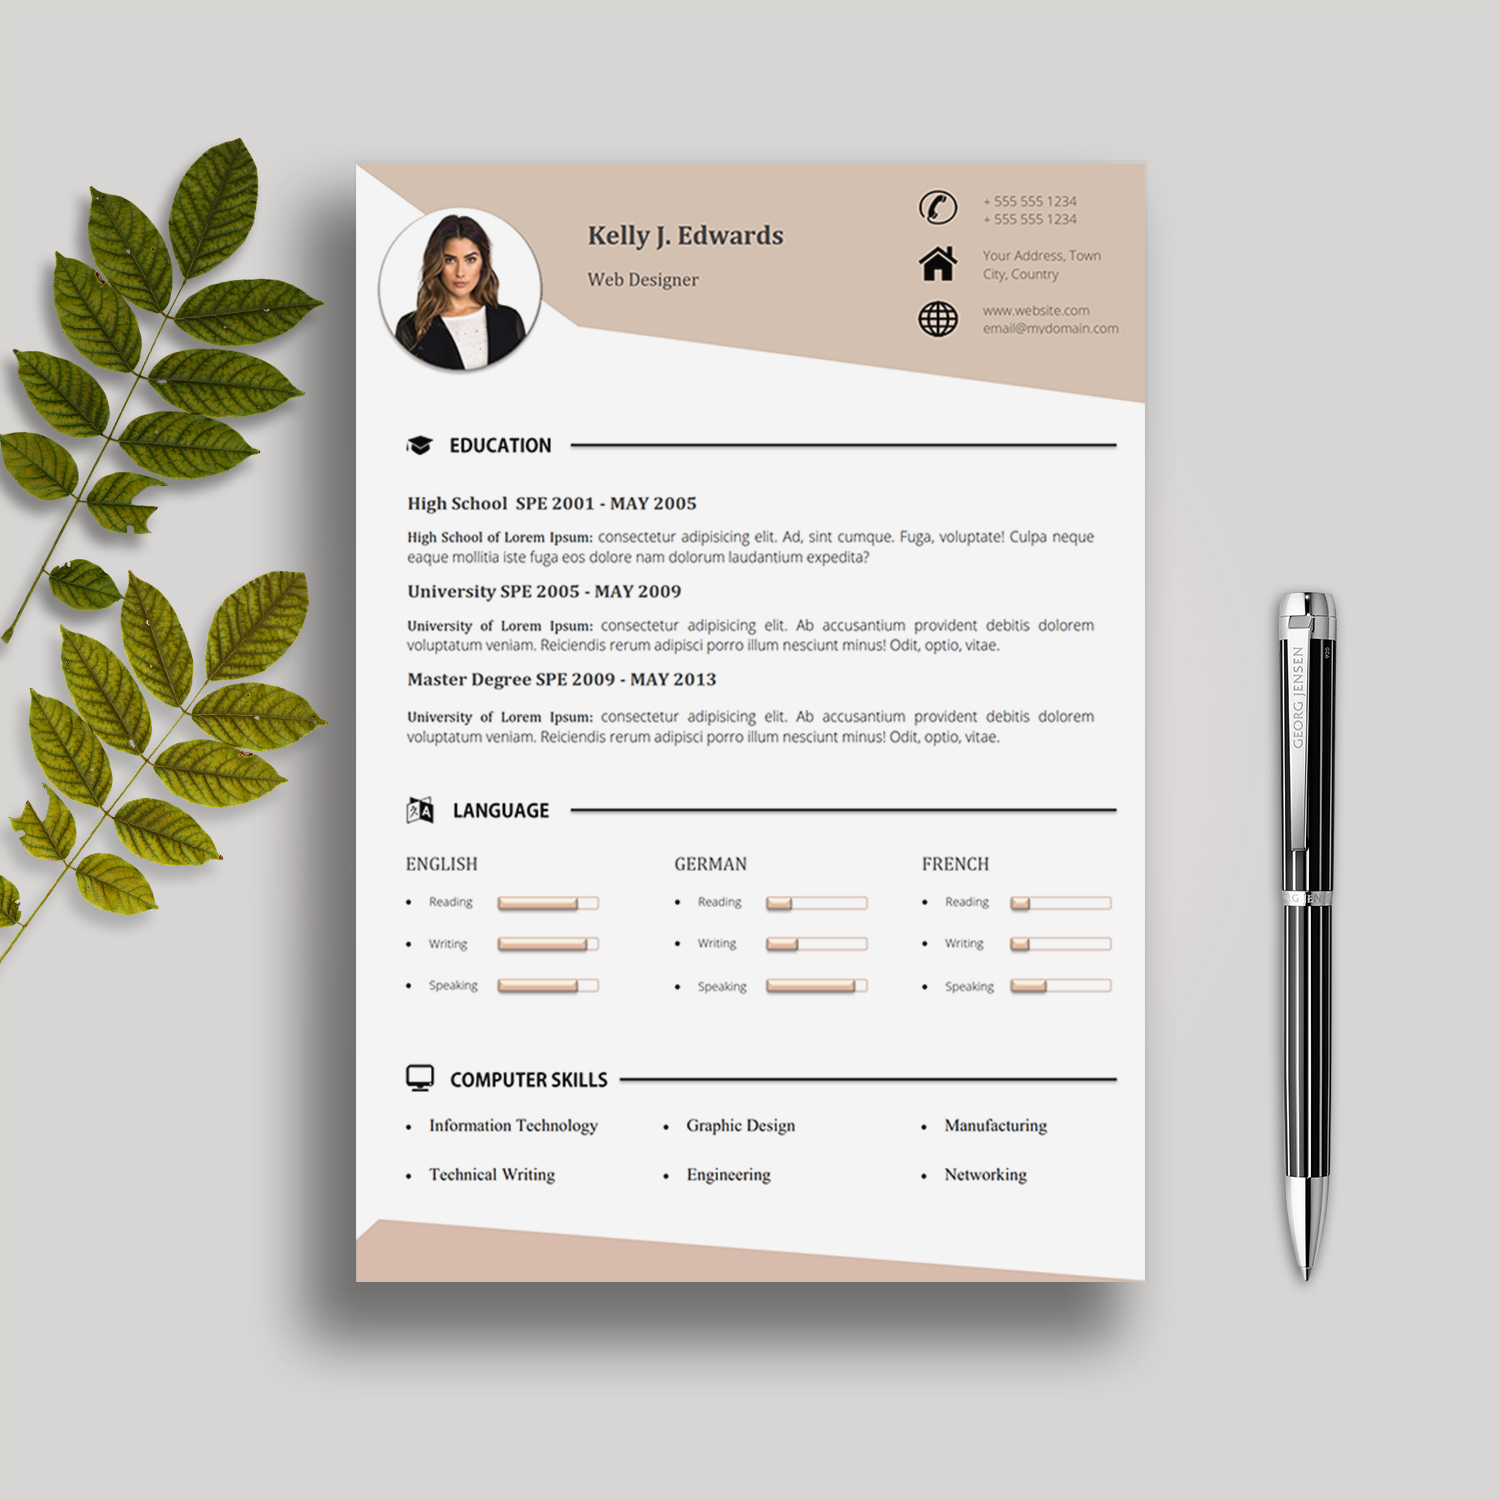 5 Pages Cv Template With Cover Letter References And Portfolio Kelly J Edwards Creative Resume Templates